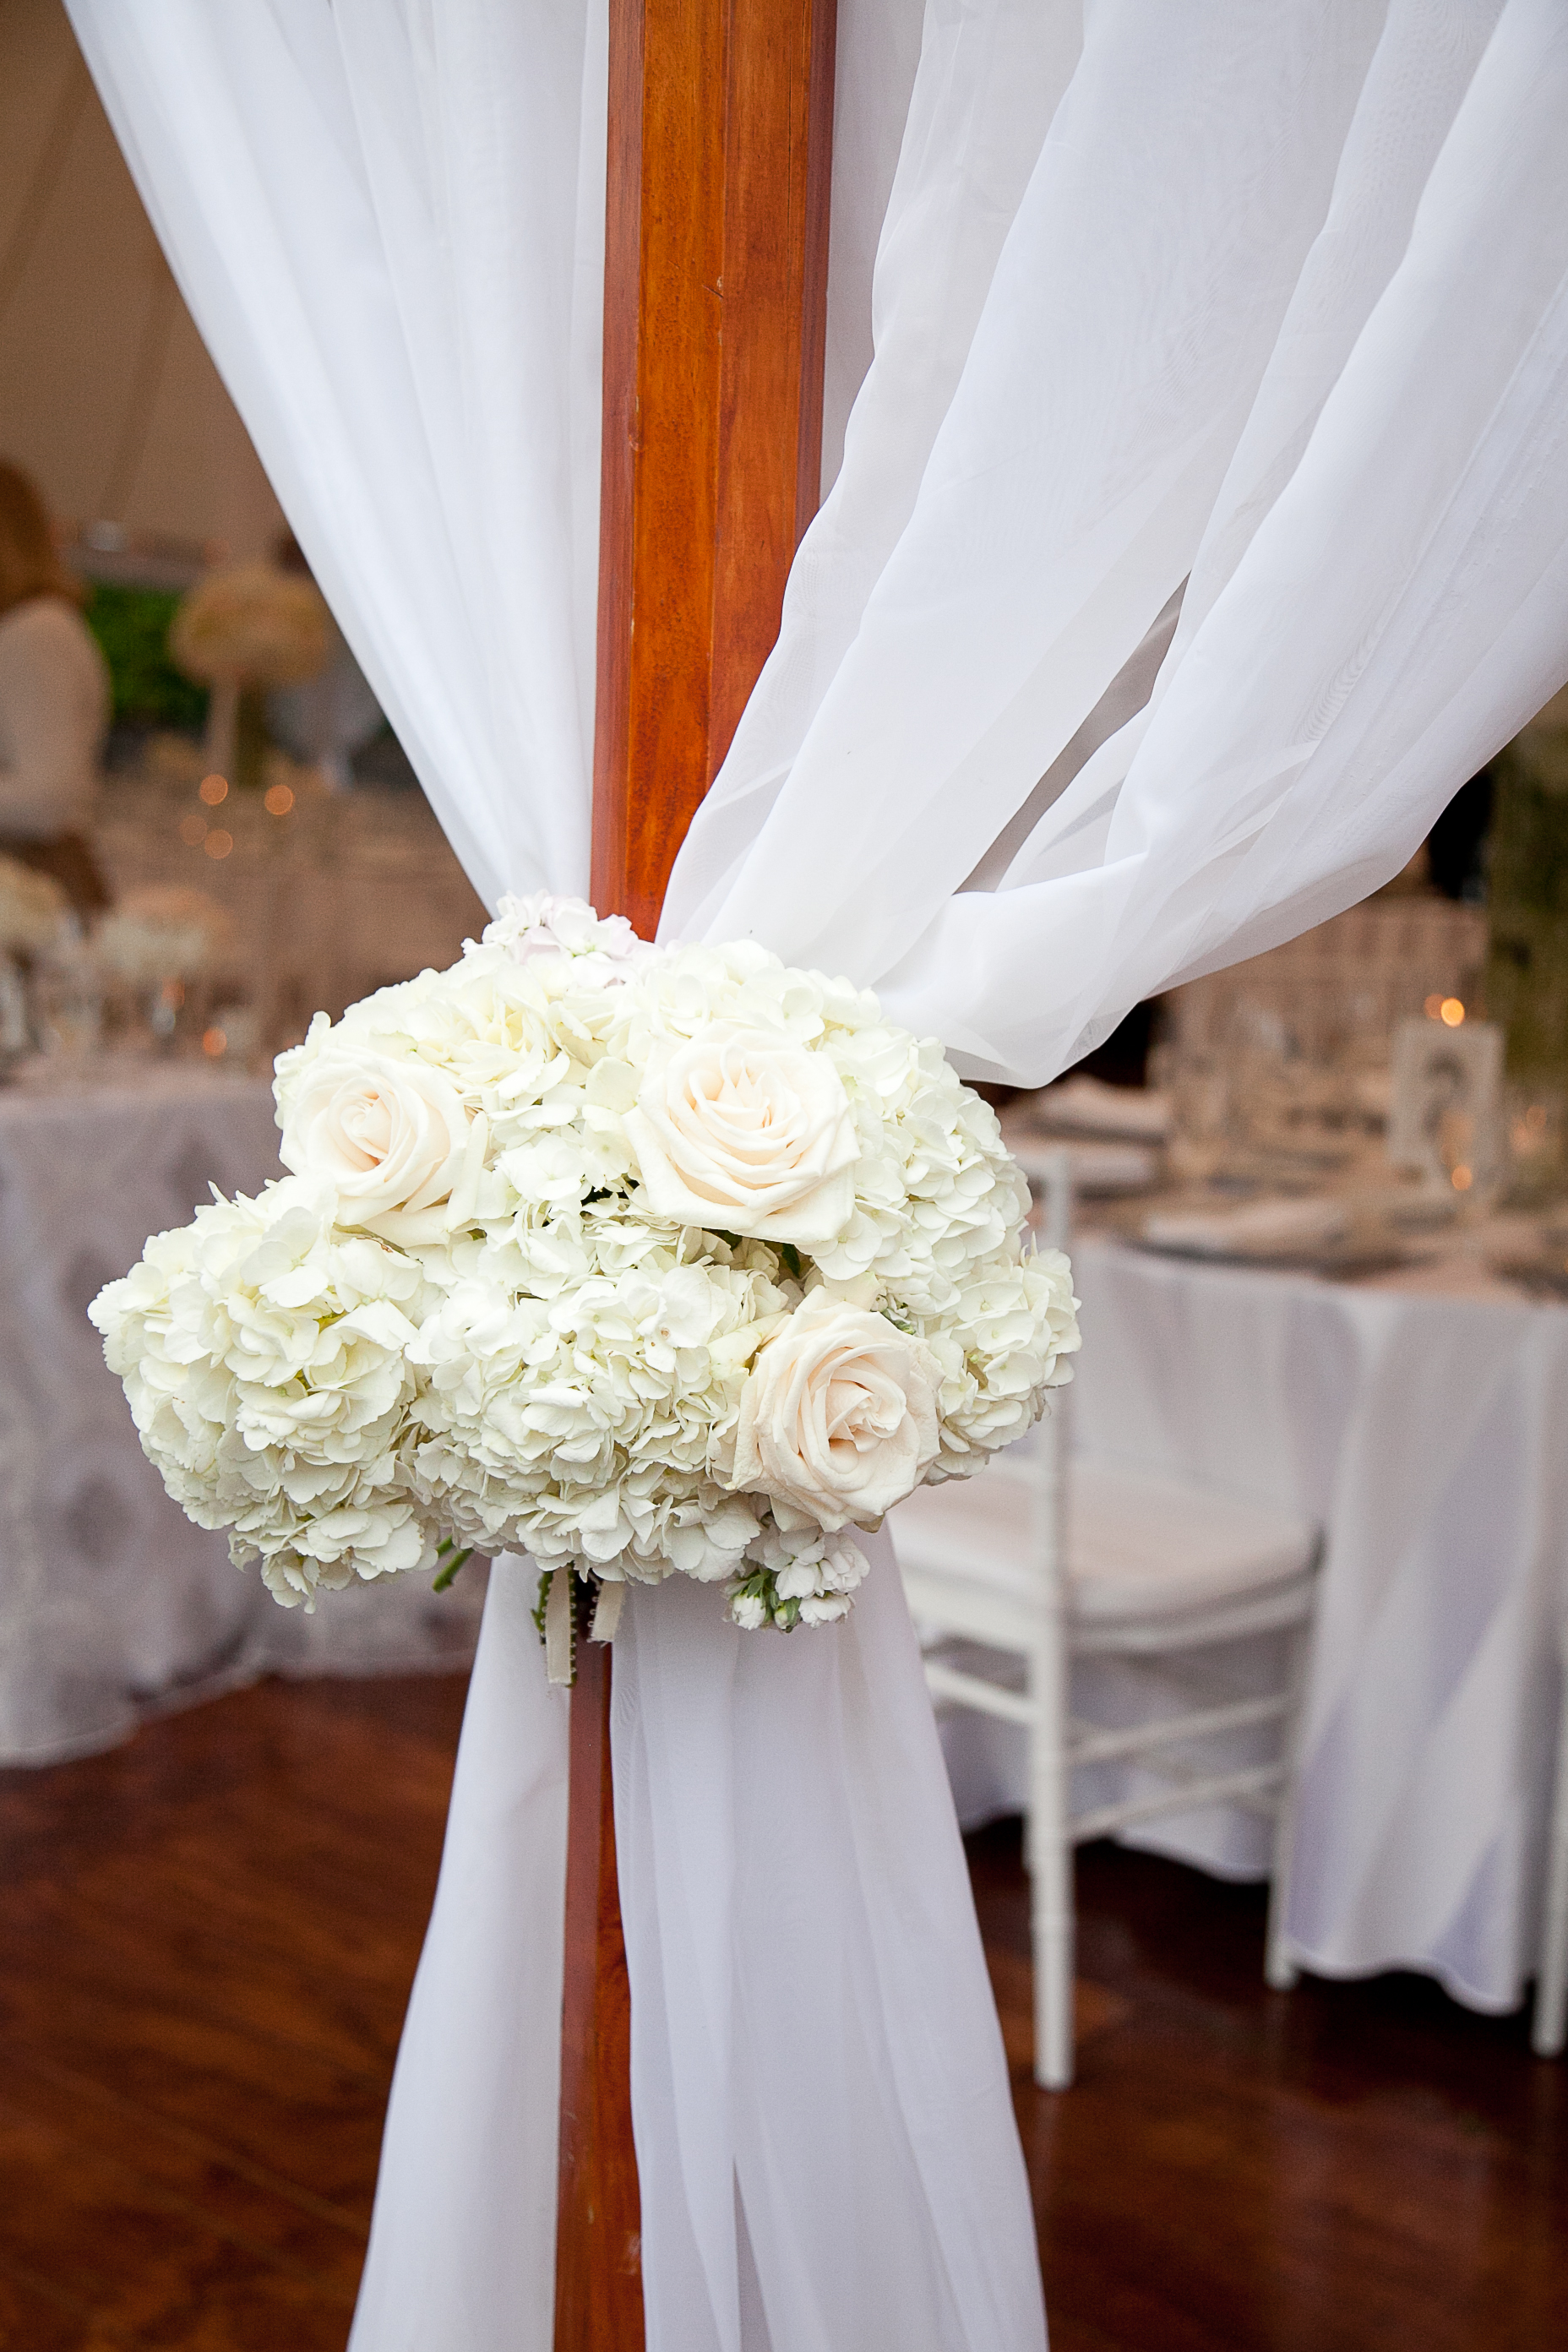 tented wedding fabric draping